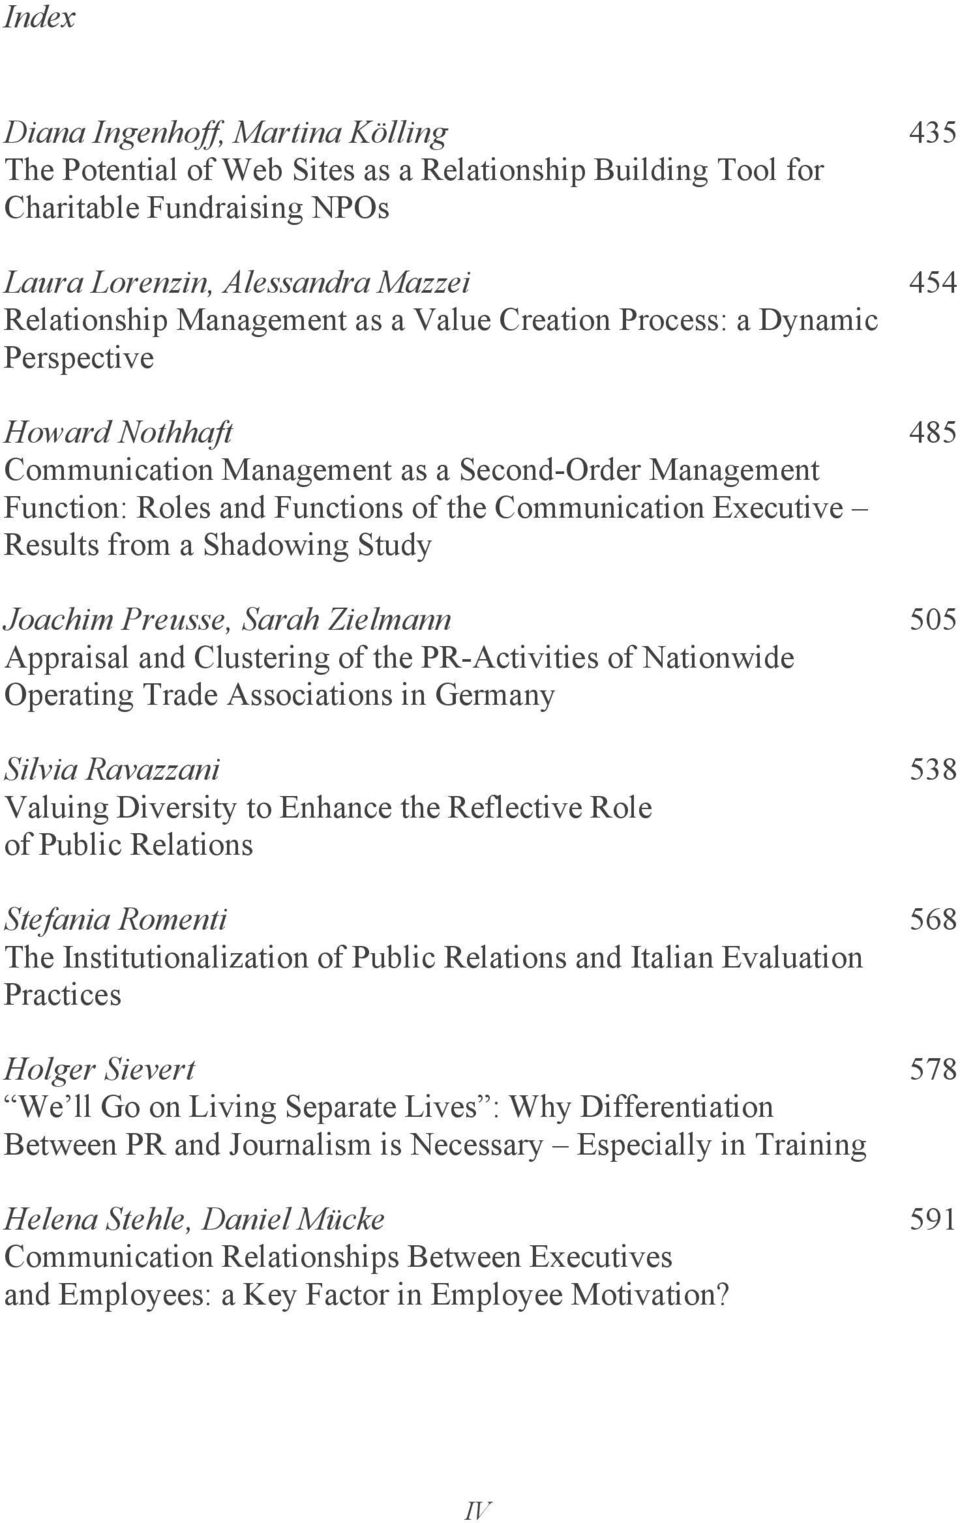 Shadowing Study Joachim Preusse, Sarah Zielmann 505 Appraisal and Clustering of the PR-Activities of Nationwide Operating Trade Associations in Germany Silvia Ravazzani 538 Valuing Diversity to